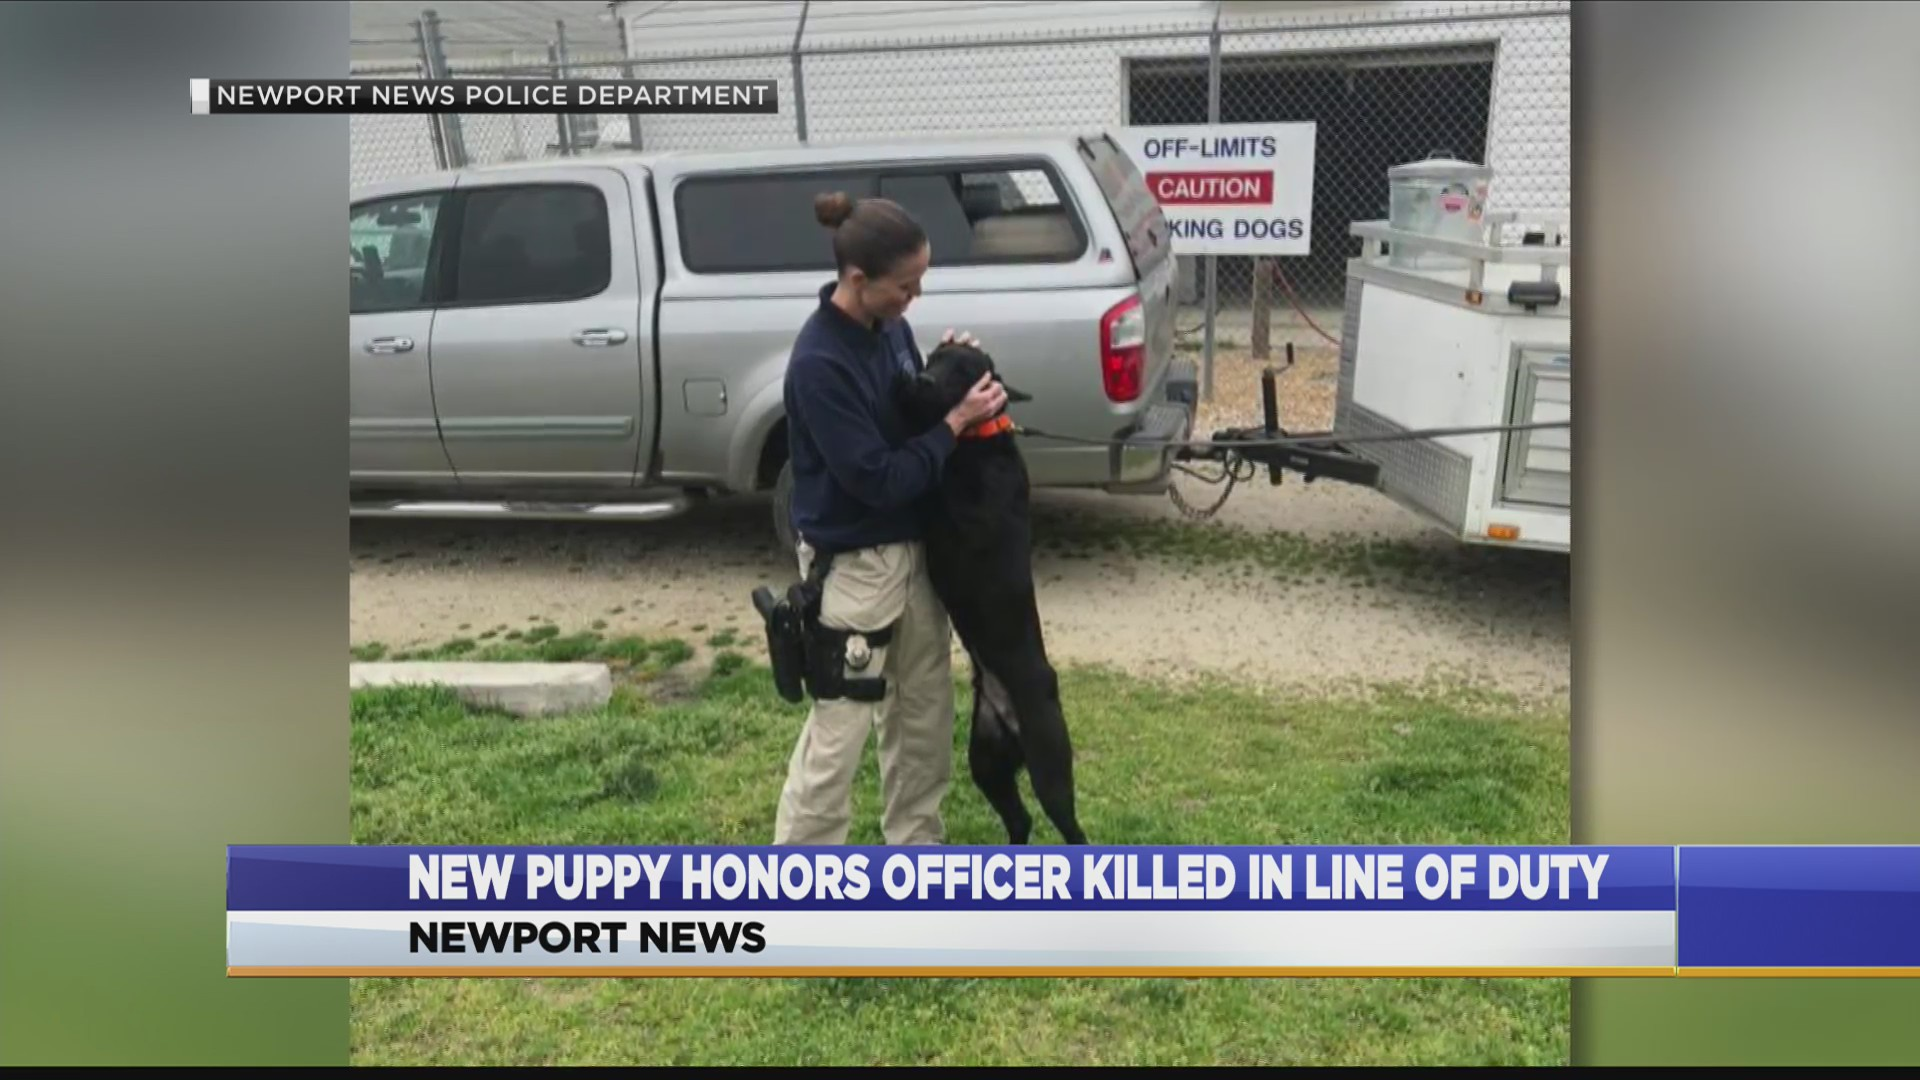 Newport News Master Police Officer Brittany Lewis, the fiancee of fallen officer Katie Thyne, spends some time with Fenway, the new K-9 donated in Officer Thyne's memory. (Photo: Courtesy Newport News Police Department)